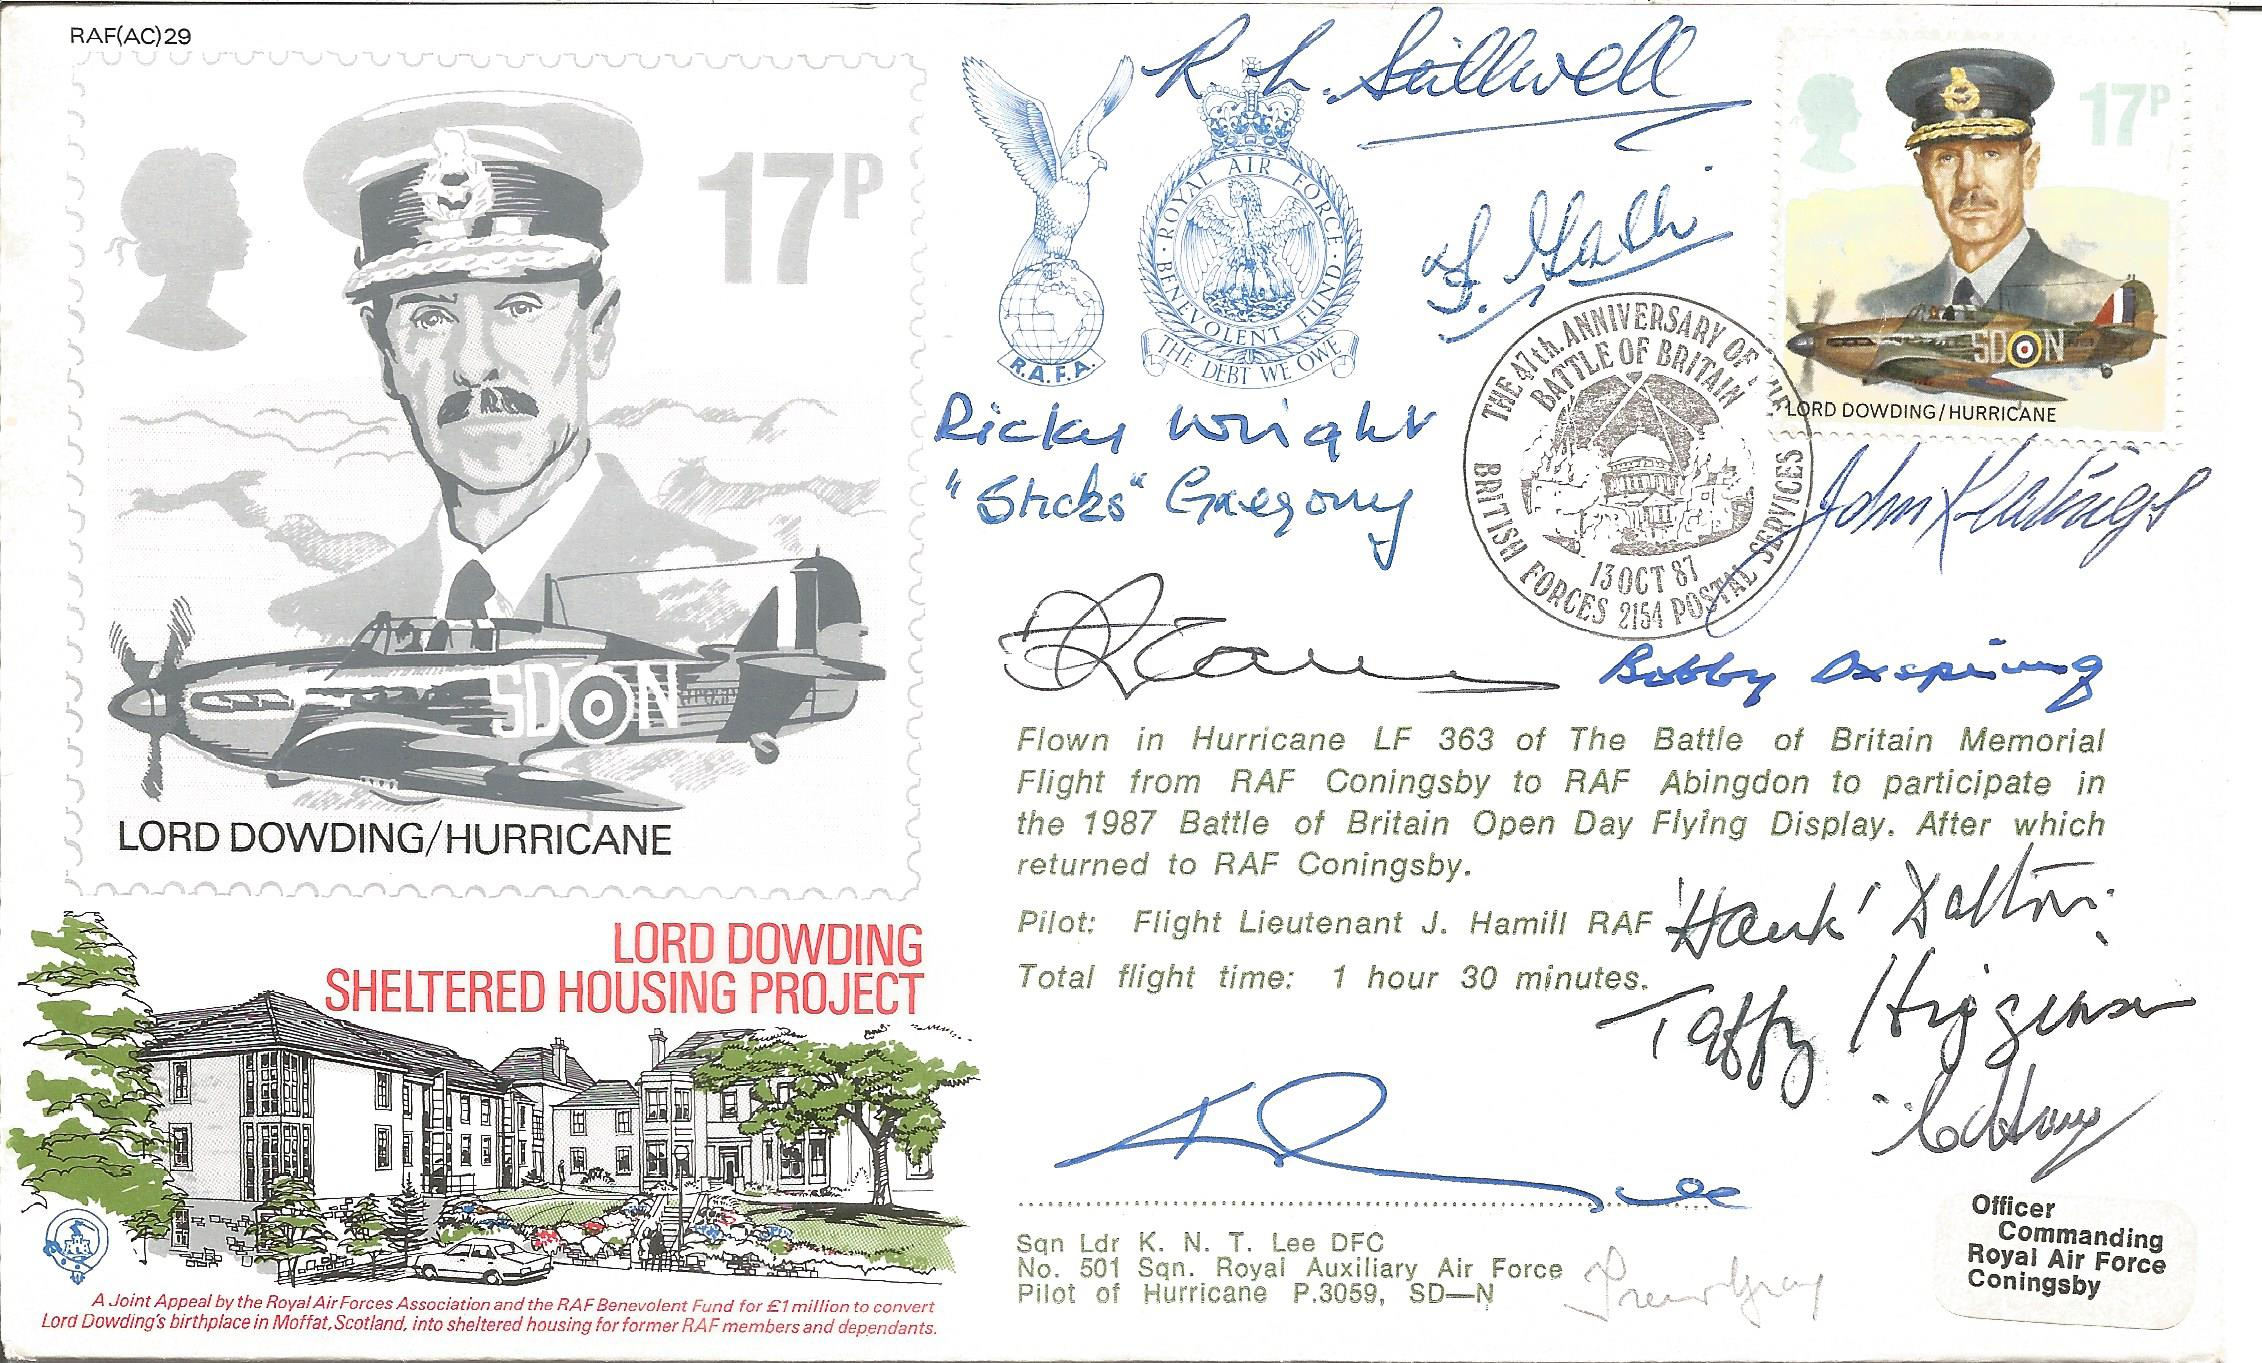 Ten BOB pilots signed RAF WW2 cover. Lord Dowding Hurricane signed RAF(AC)29 RAF cover Lord